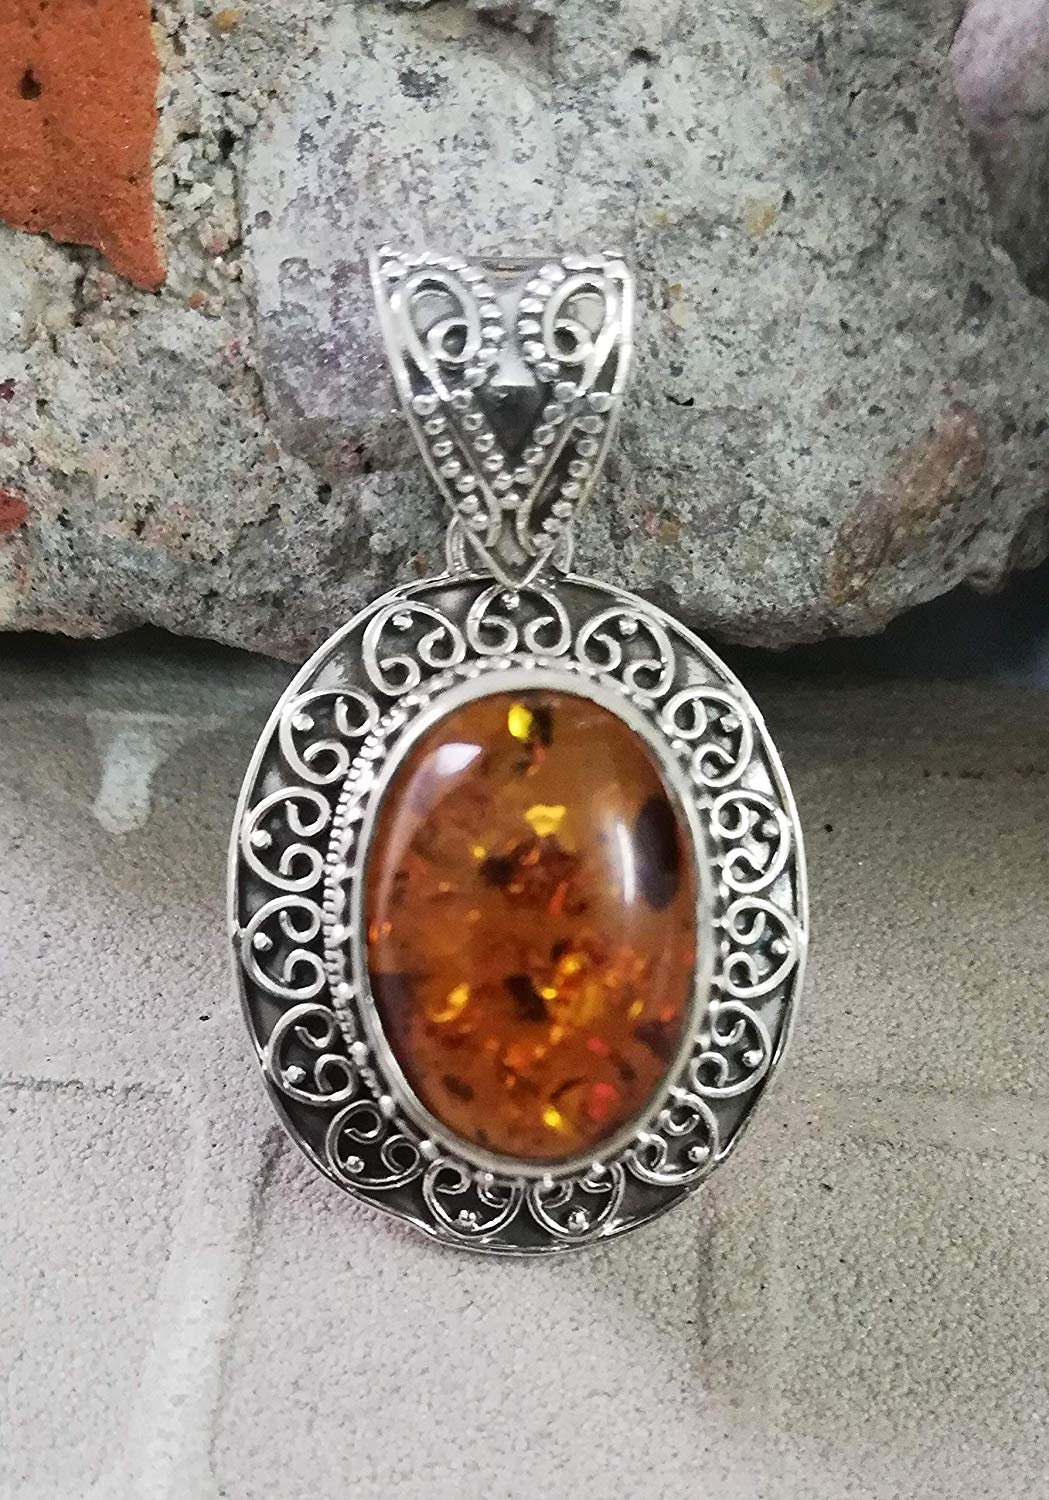 Amber Pendant 925 Sterling Silver Exquisite Handcrafted Pendant Antique Pendant Beach Wedding Pendant Artisan Silver Work Extremely Unusual Jewelry Victorian & Filigree Pendant Intricate Design Boho